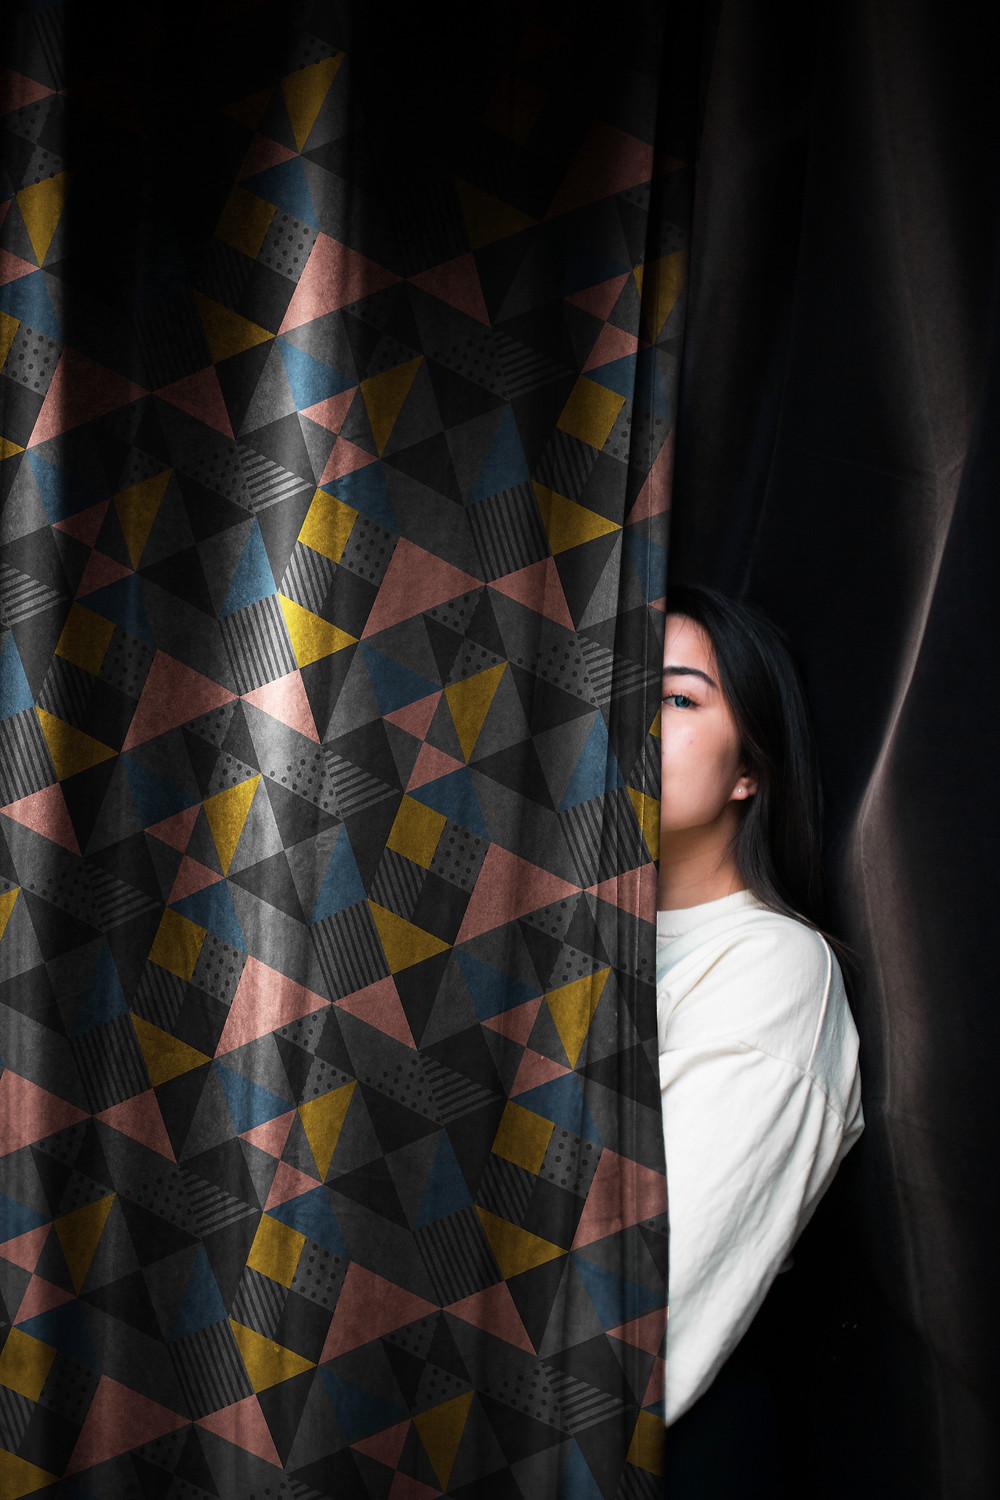 A woman behind a curtain - hiding like some copy blocks I could mention